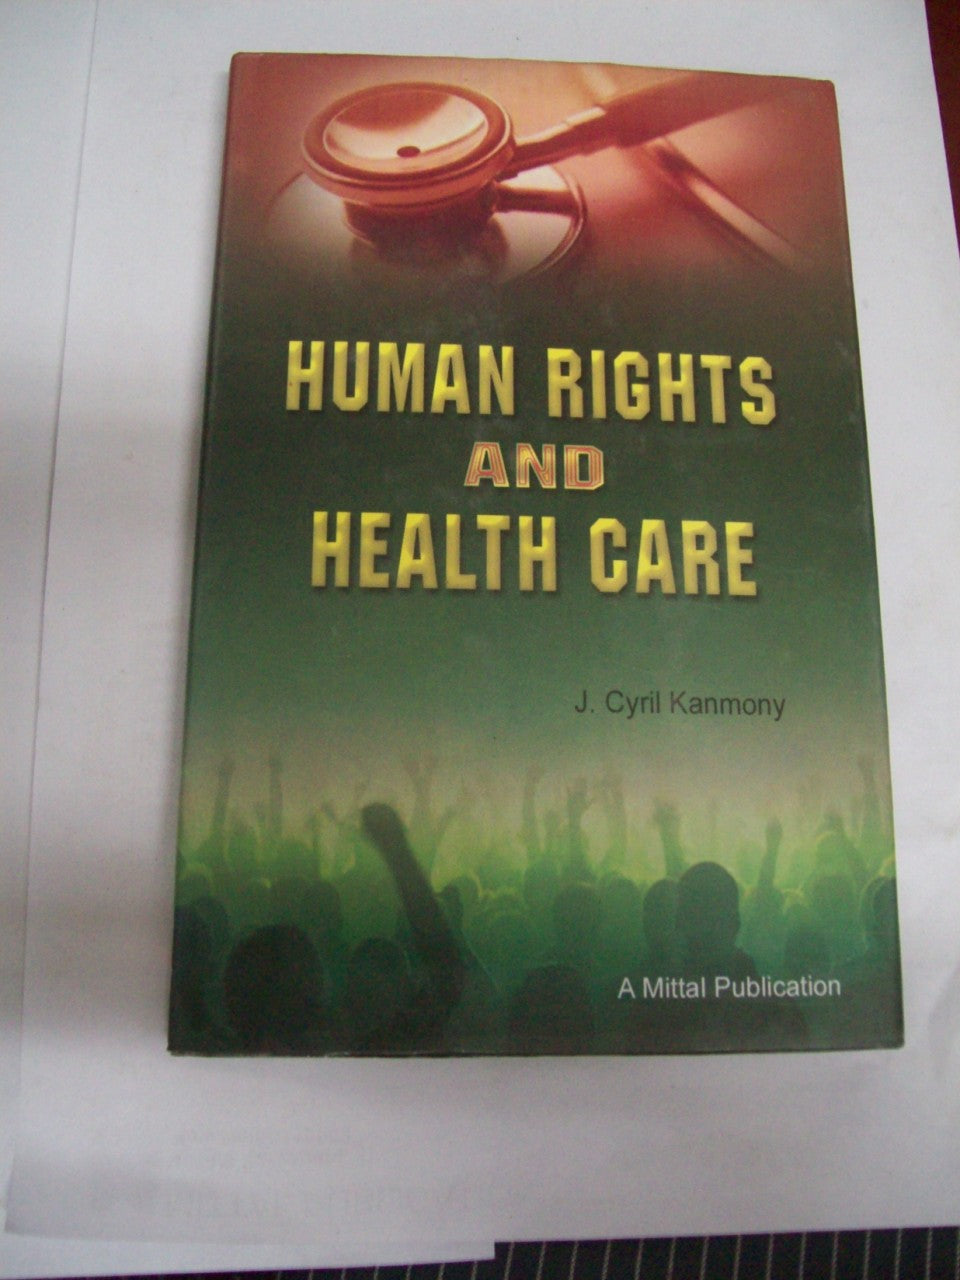 Human Rights and Health Care